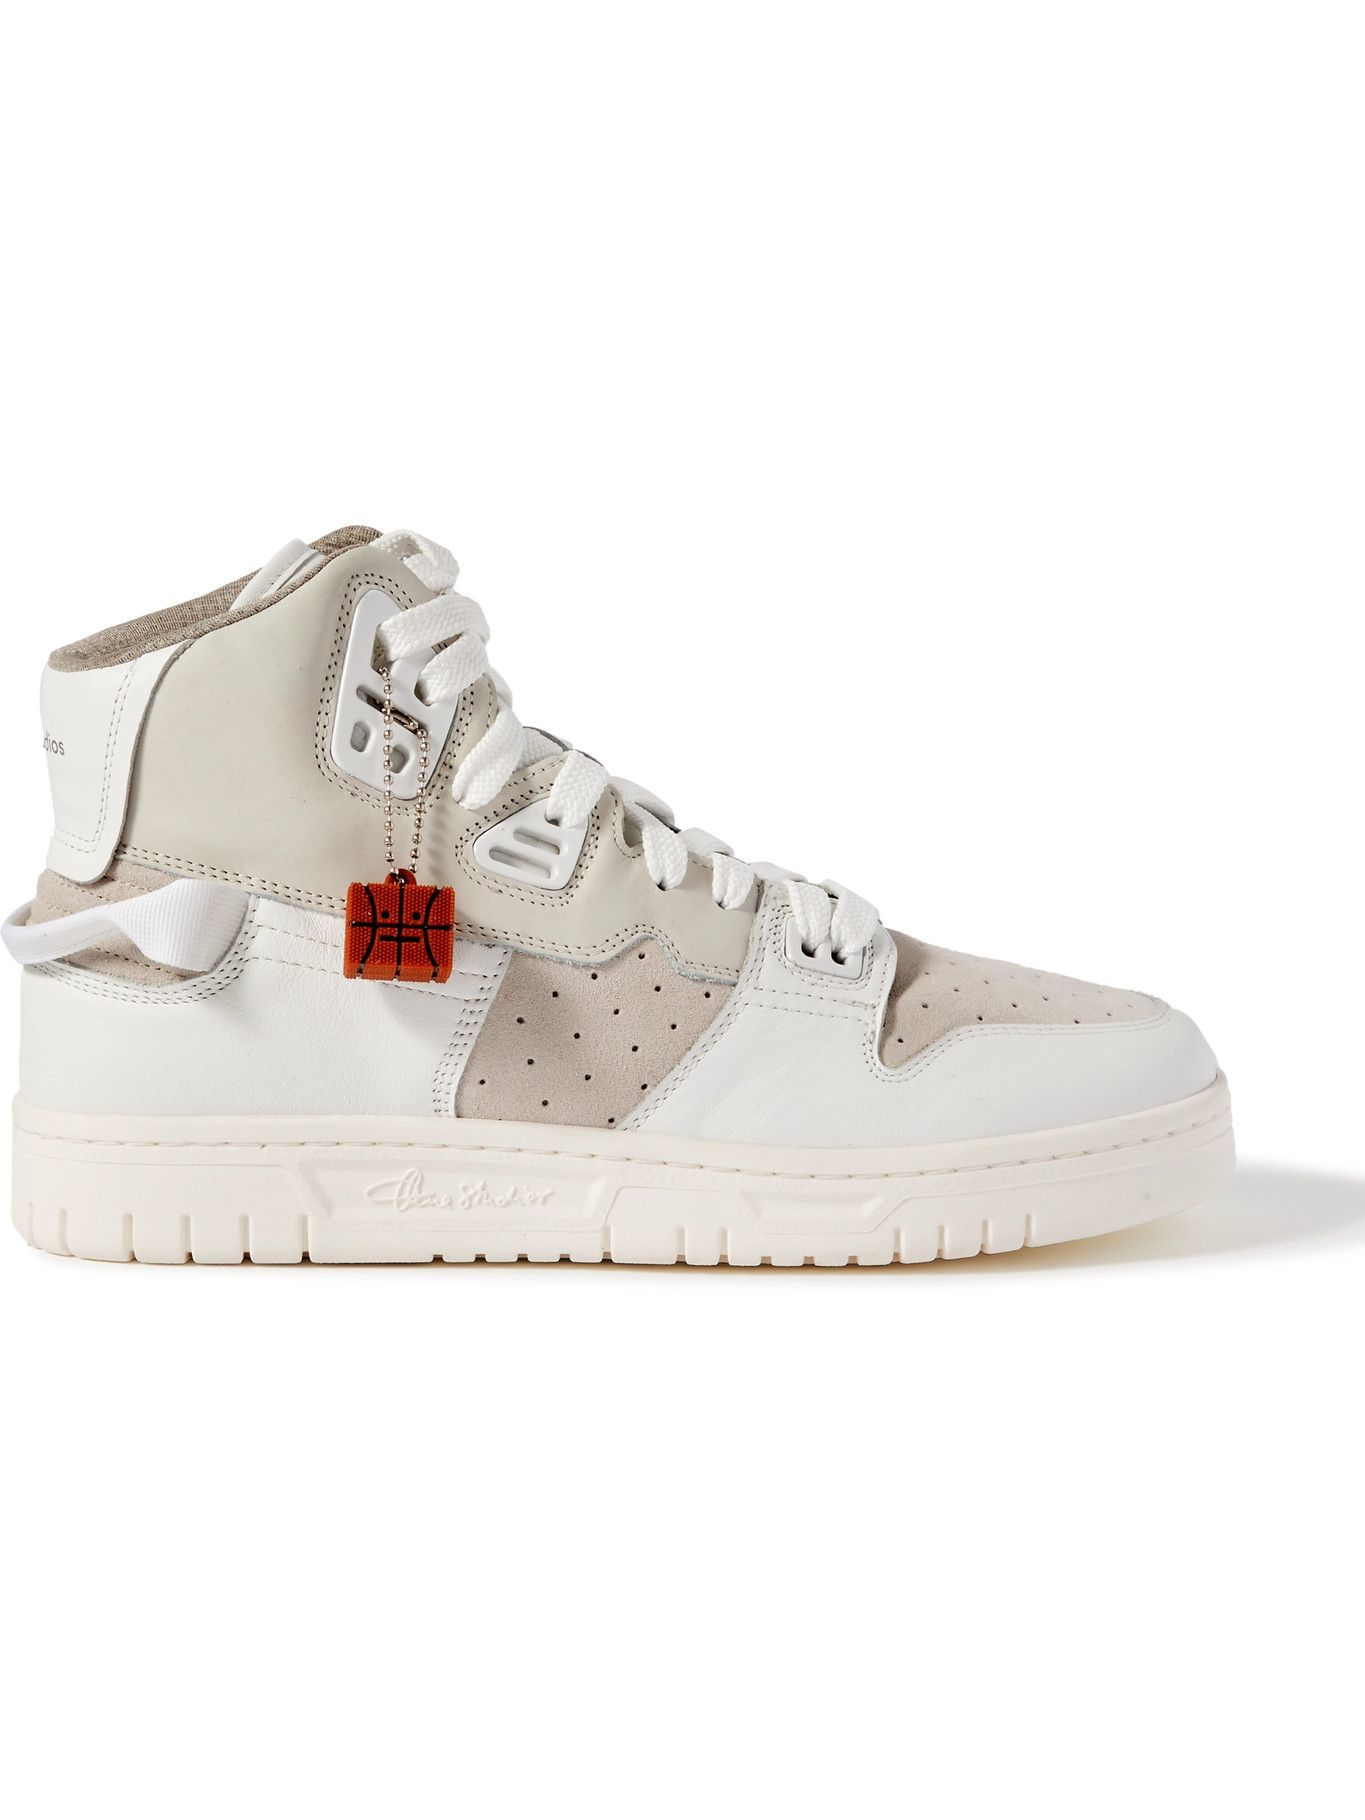 Photo: ACNE STUDIOS - Buxeda Suede-Trimmed Leather High-Top Sneakers - White